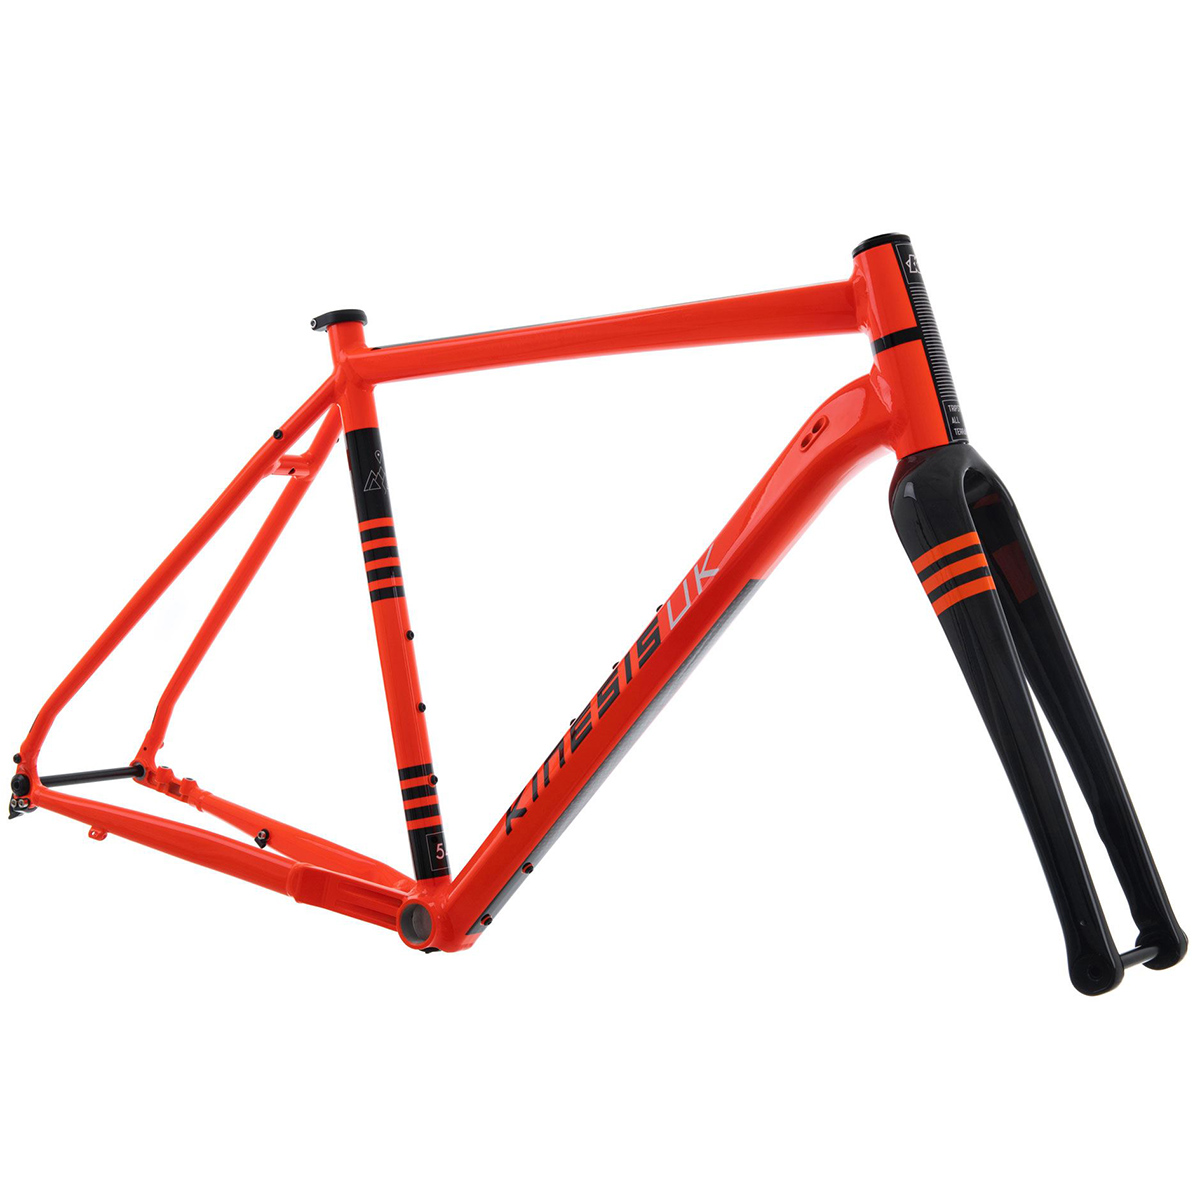 Kinesis Tripster AT Gravel Bike Frameset With Columbus Forks